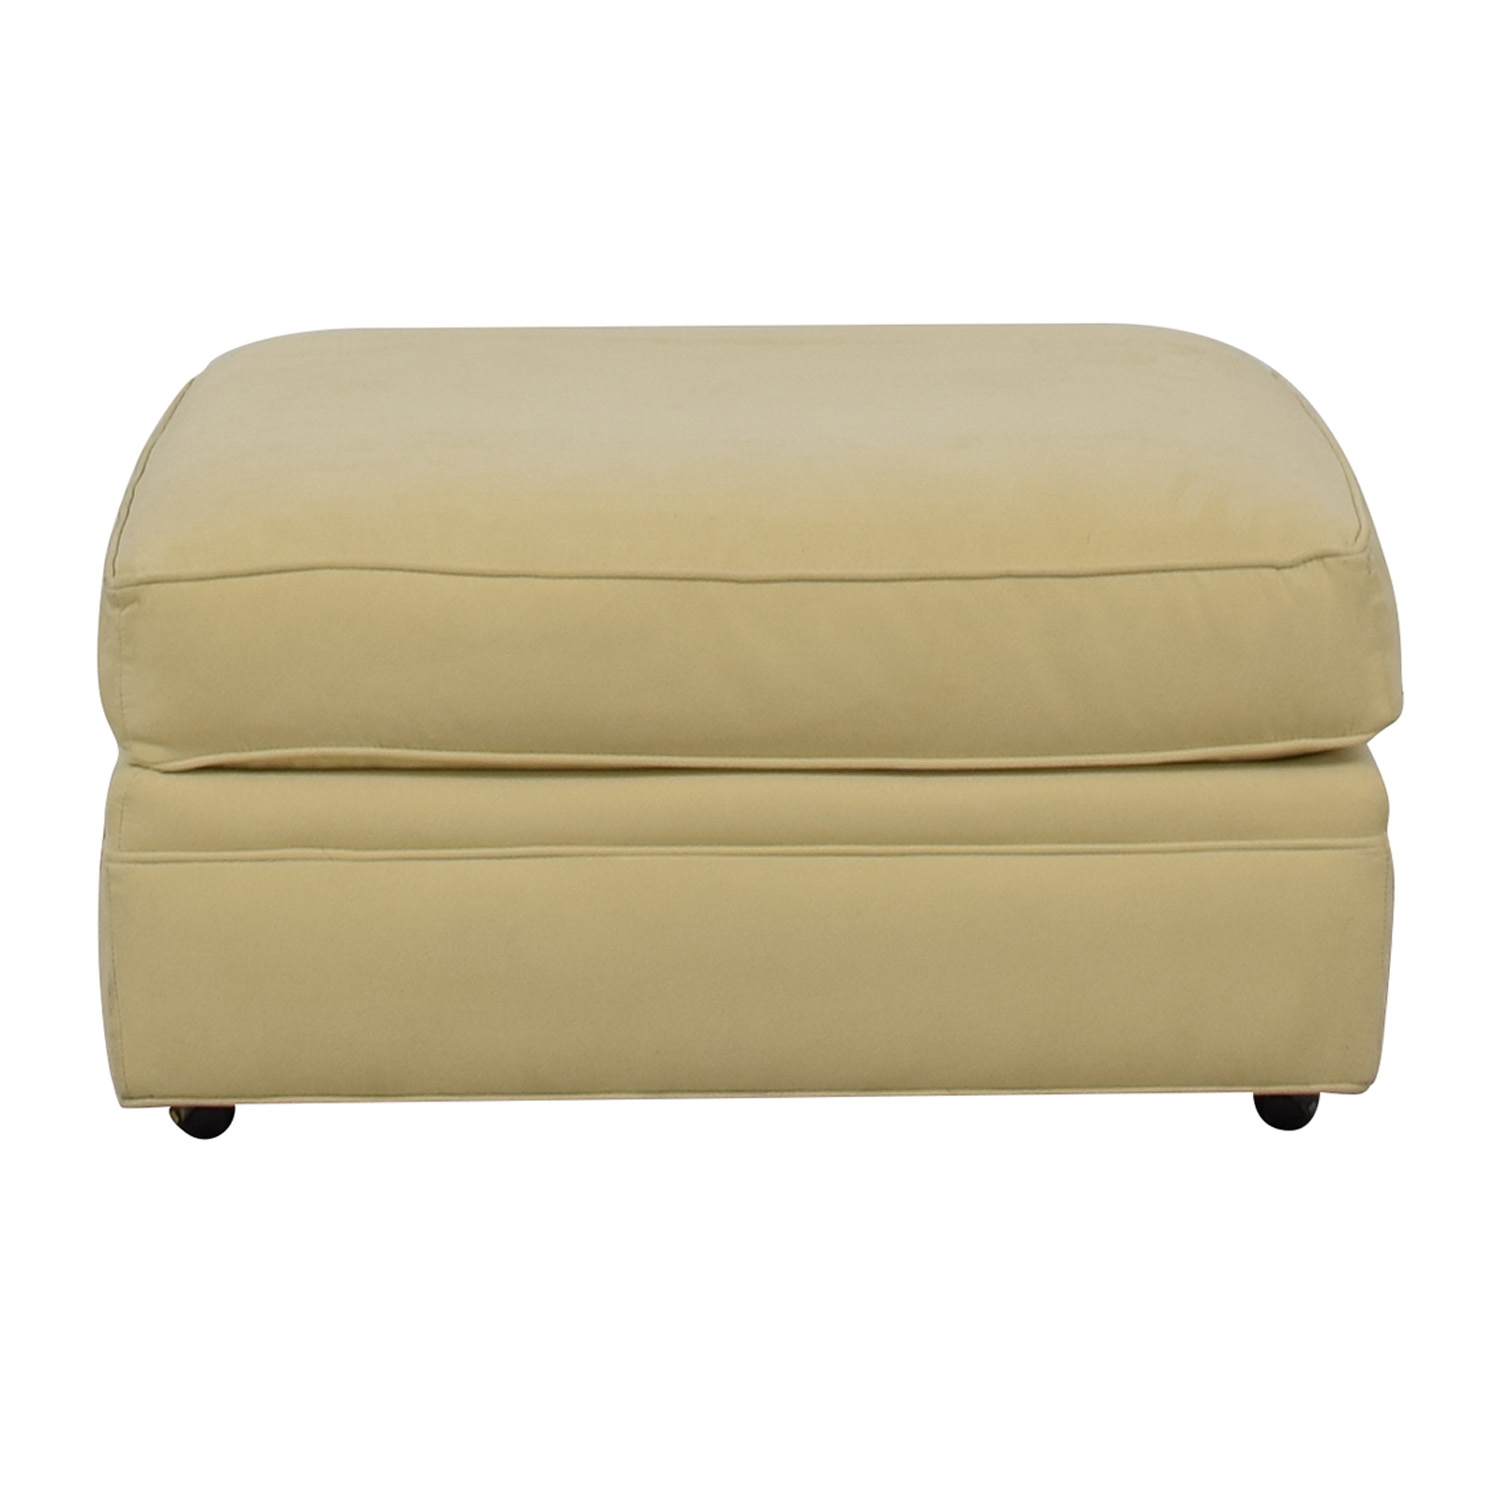 Crate & Barrel Crate & Barrel Beige Ottoman nyc